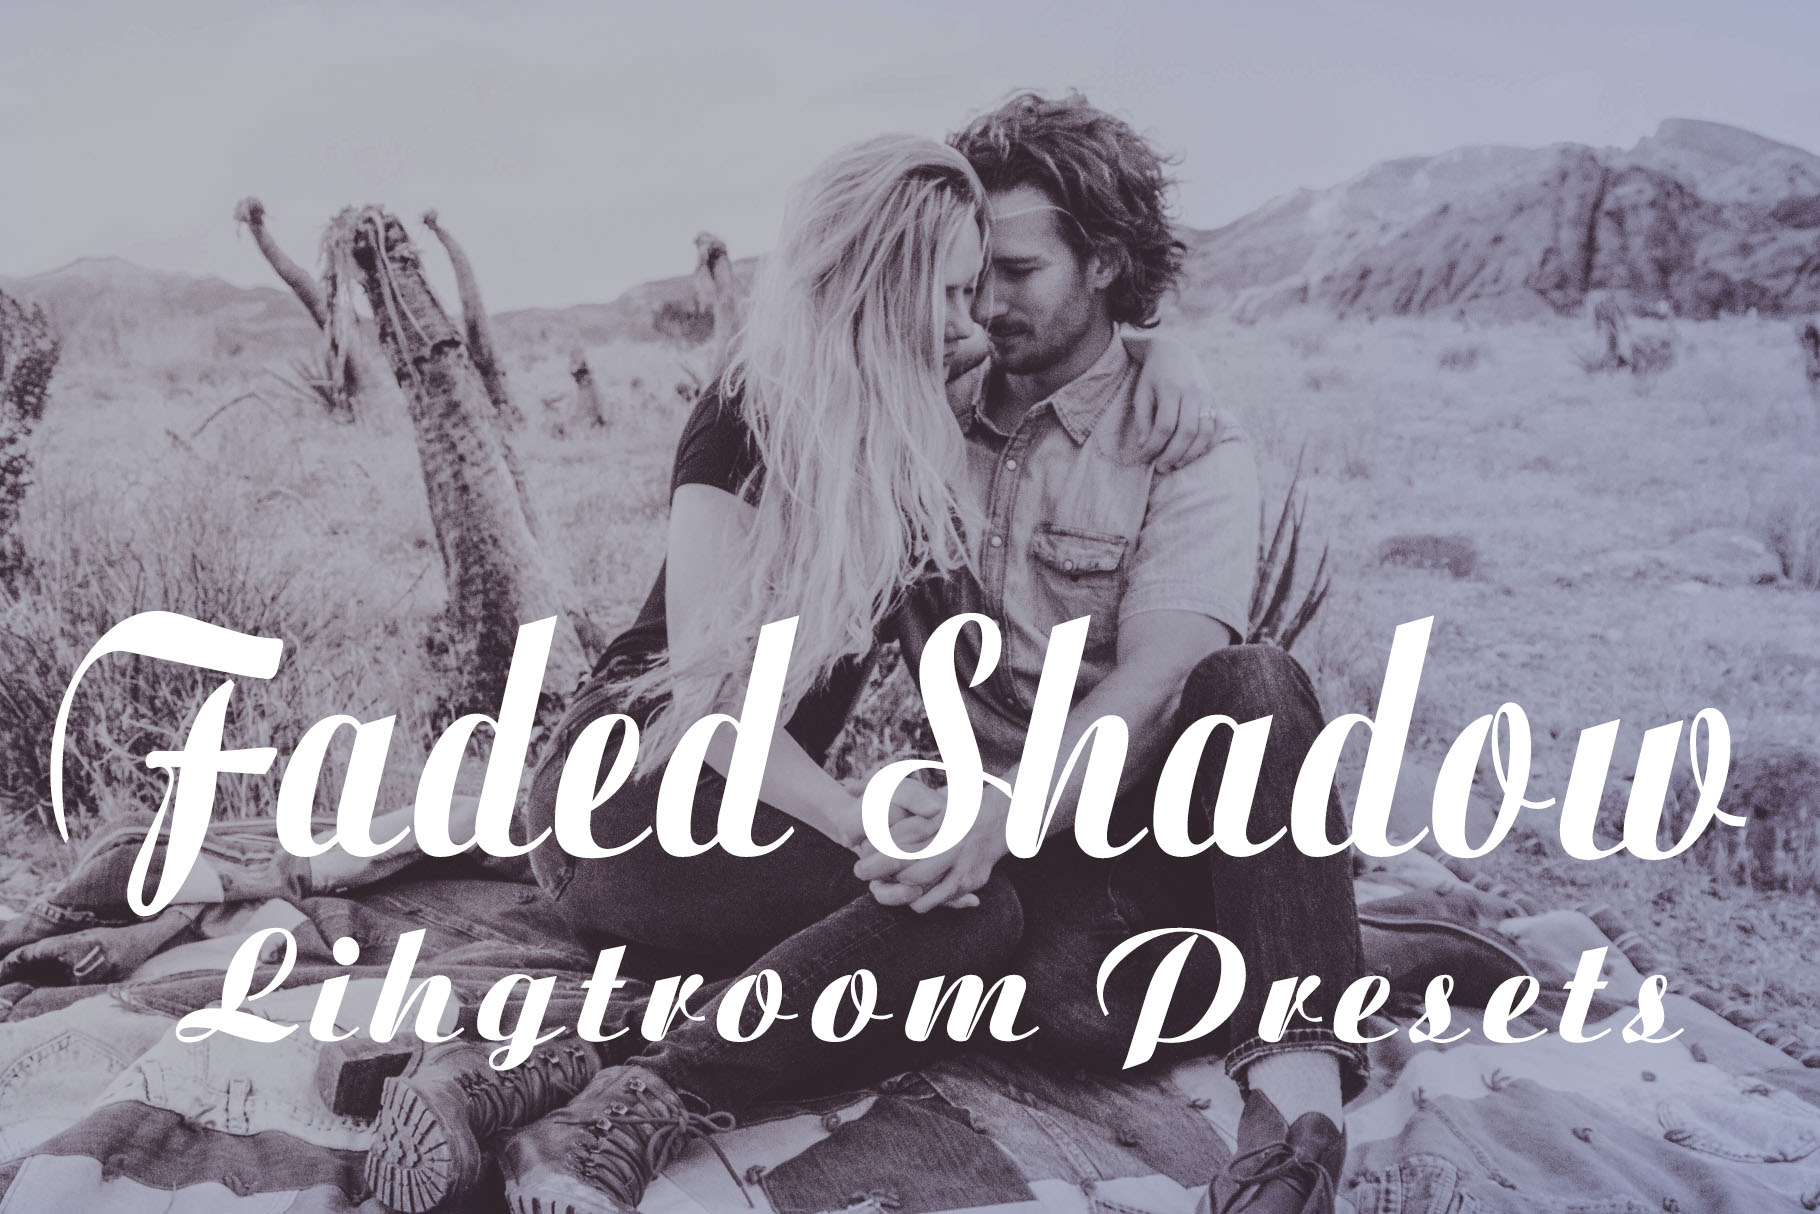 Faded Shadow Lightroom Presets example image 7